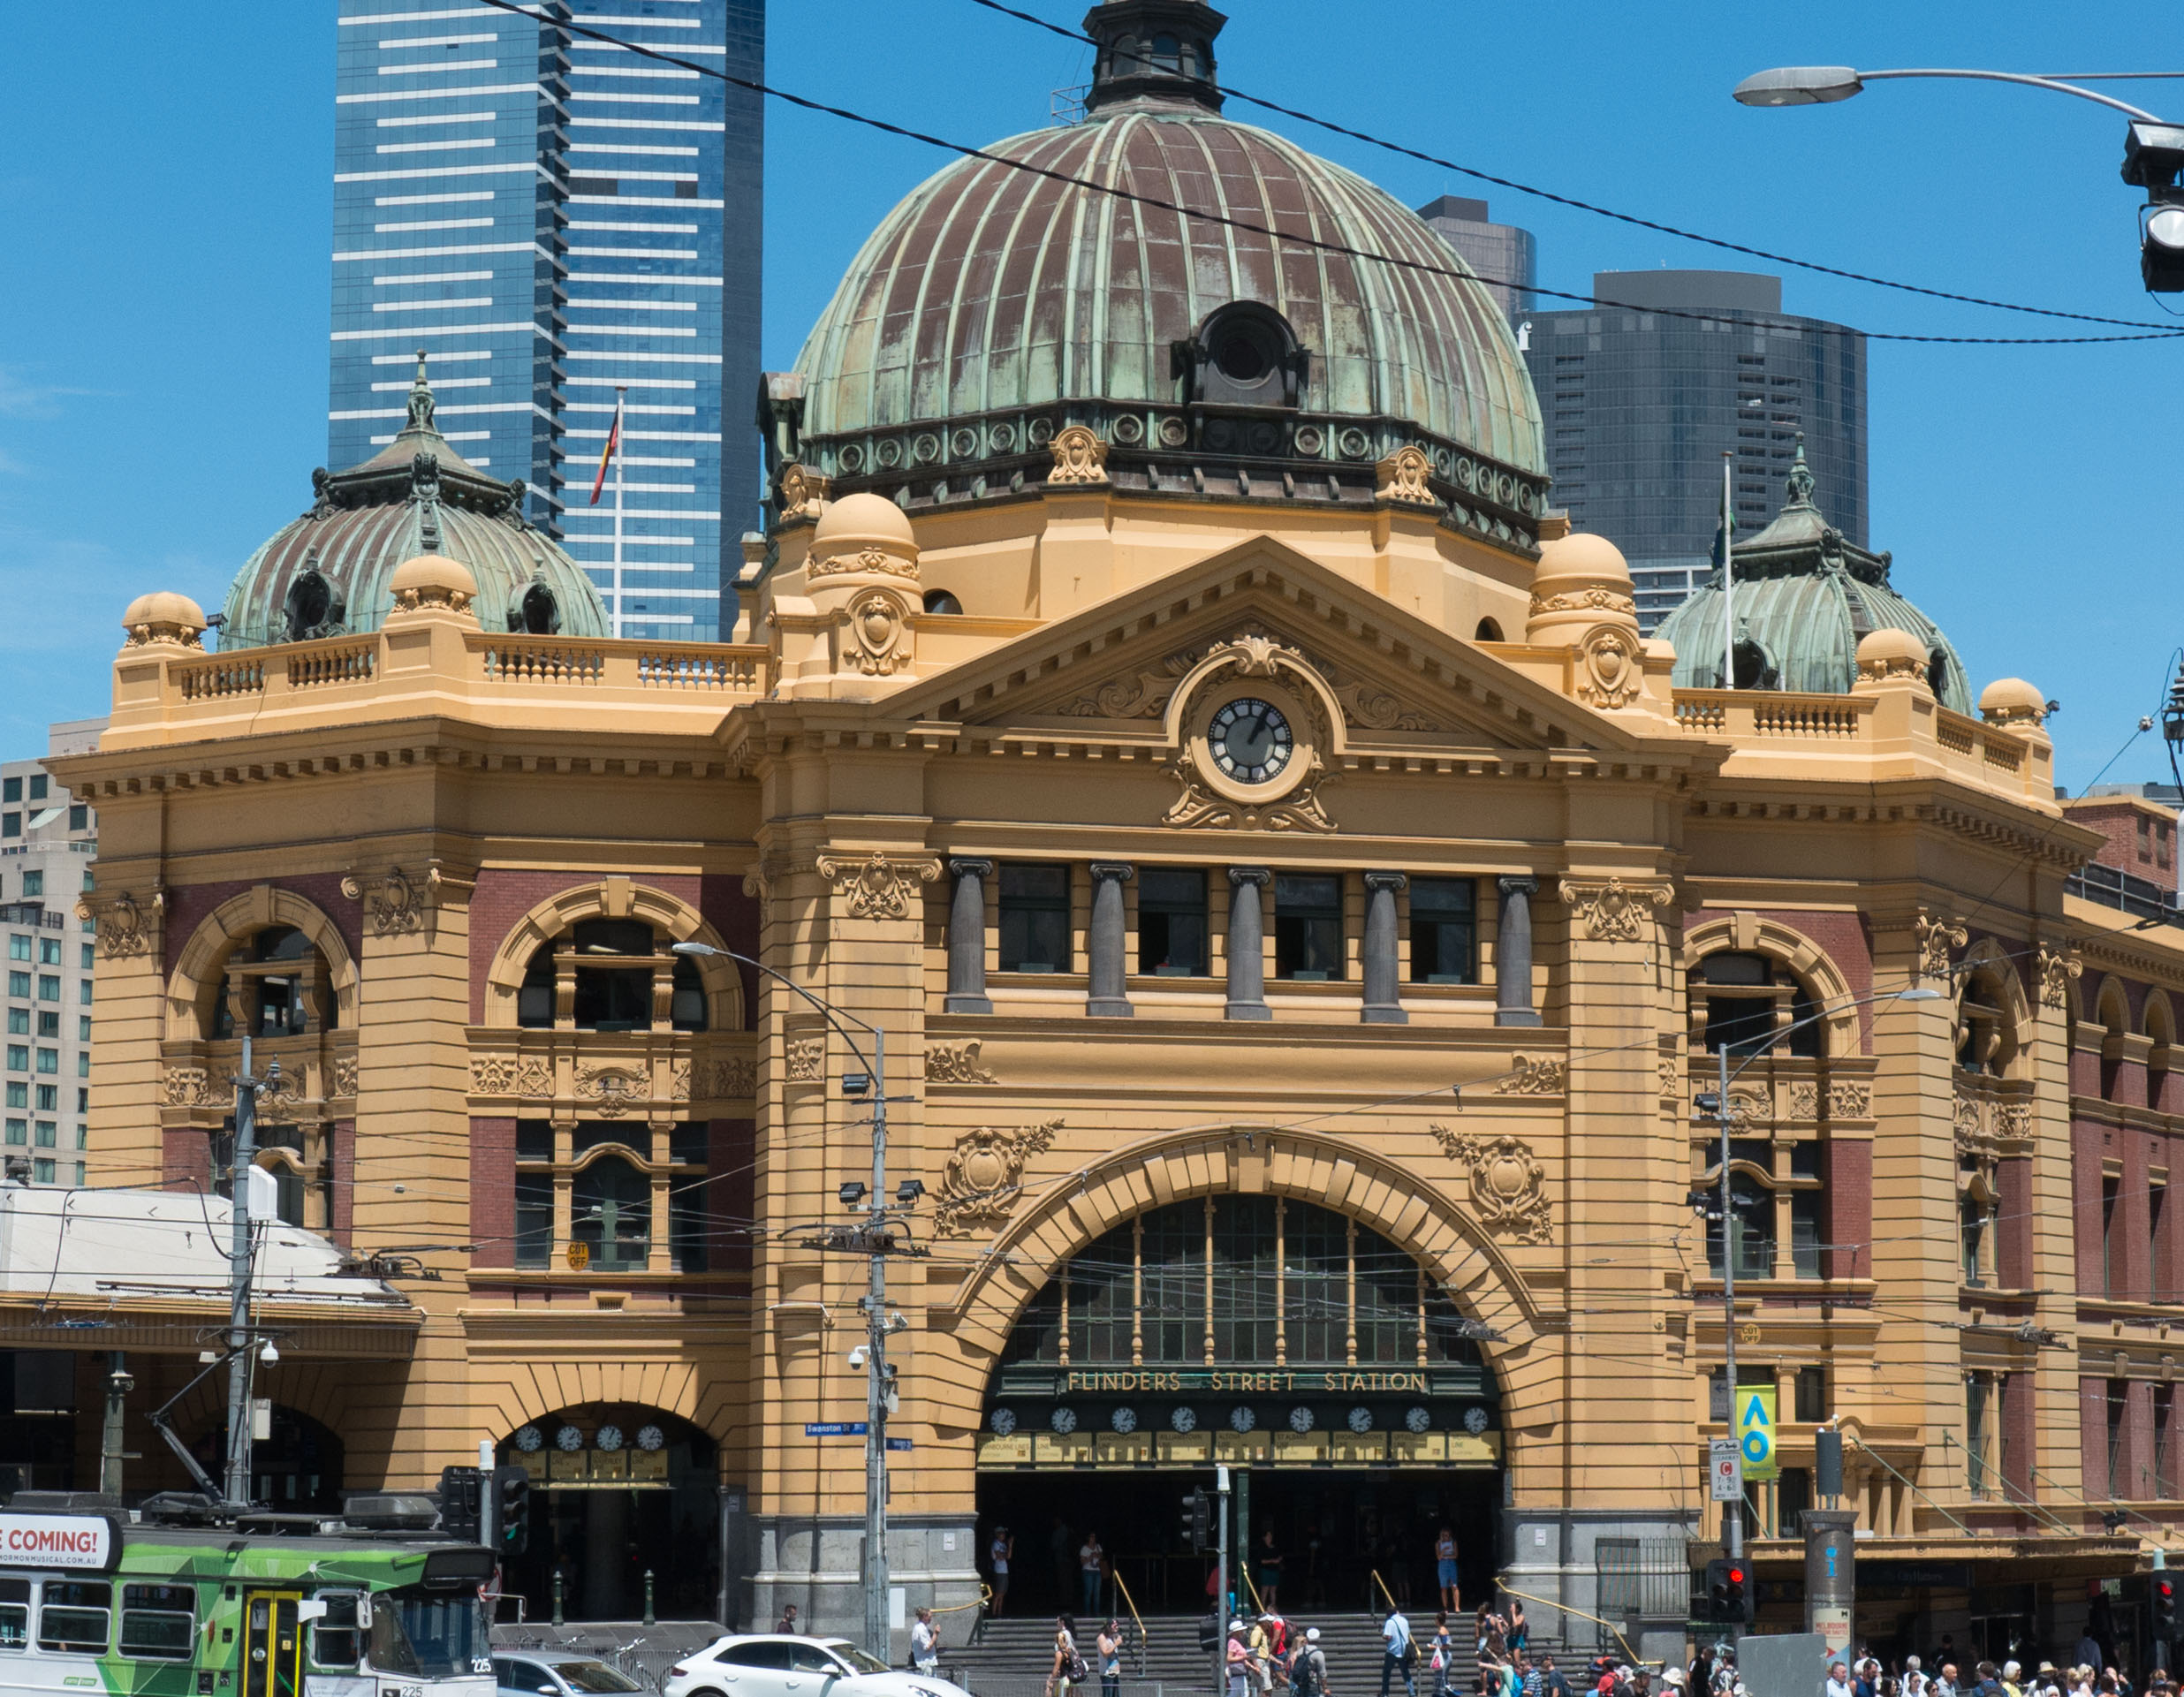 Flinders Street railway station is a railway station on the corner of Flinders and Swanston Streets in Melbourne, It is the heart of the entire metropolitan rail network. Backing onto the city reach of the Yarra River in the heart of the city, the complex covers two whole city blocks.